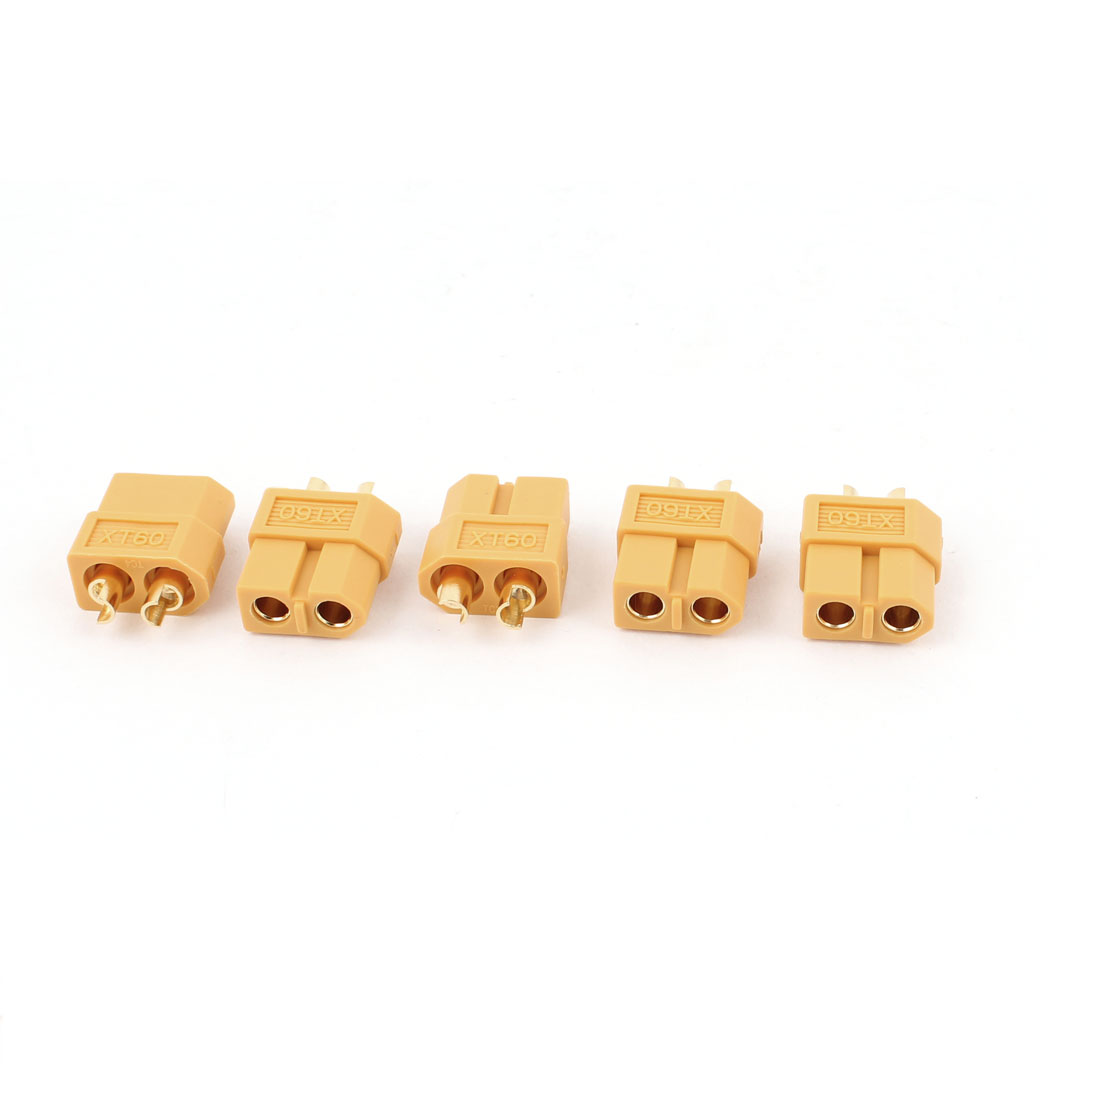 Electrical Equip S714 Type XT60 Connector Female 5 Pcs for RC Airplane